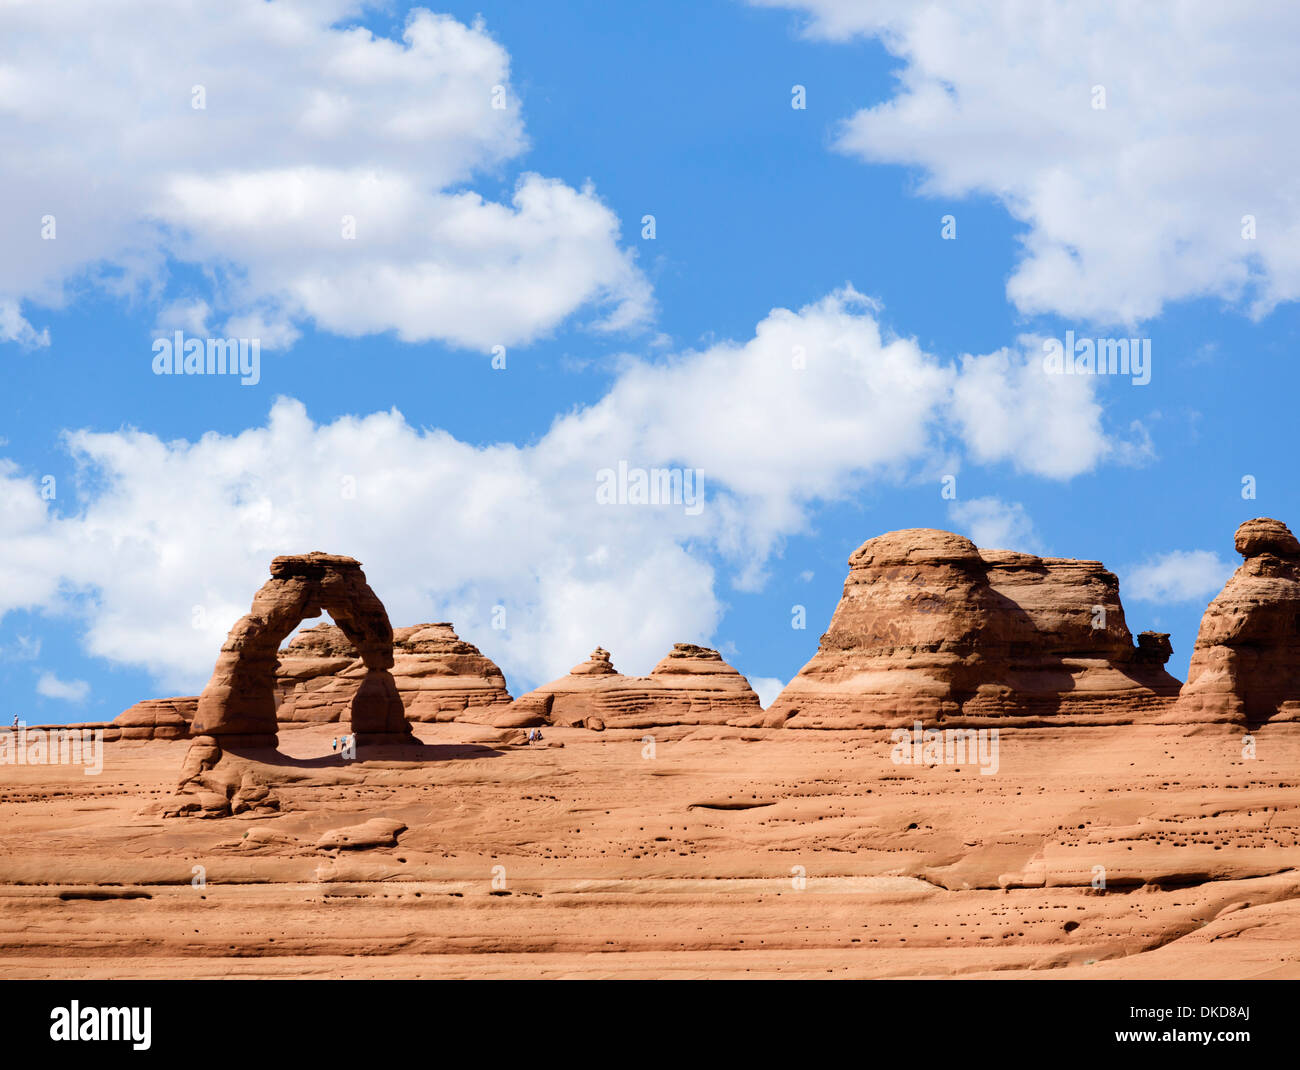 Delicate Arch from Delicate Arch Viewpoint, Arches National Park, Utah, USA - Stock Image